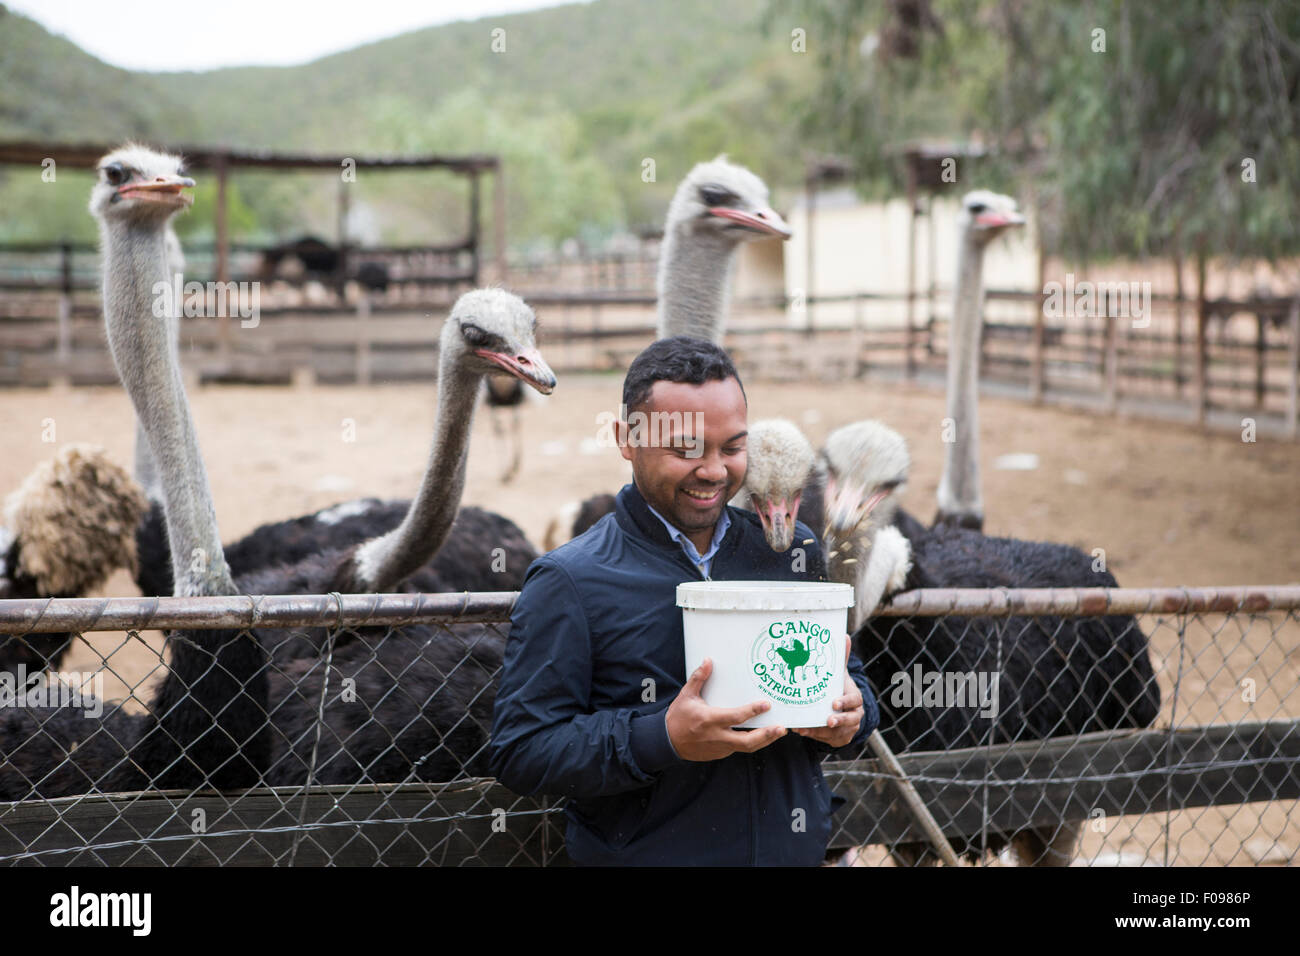 A tourist feeds Ostriches on Gango Ostrich Farm , South Africa - Stock Image